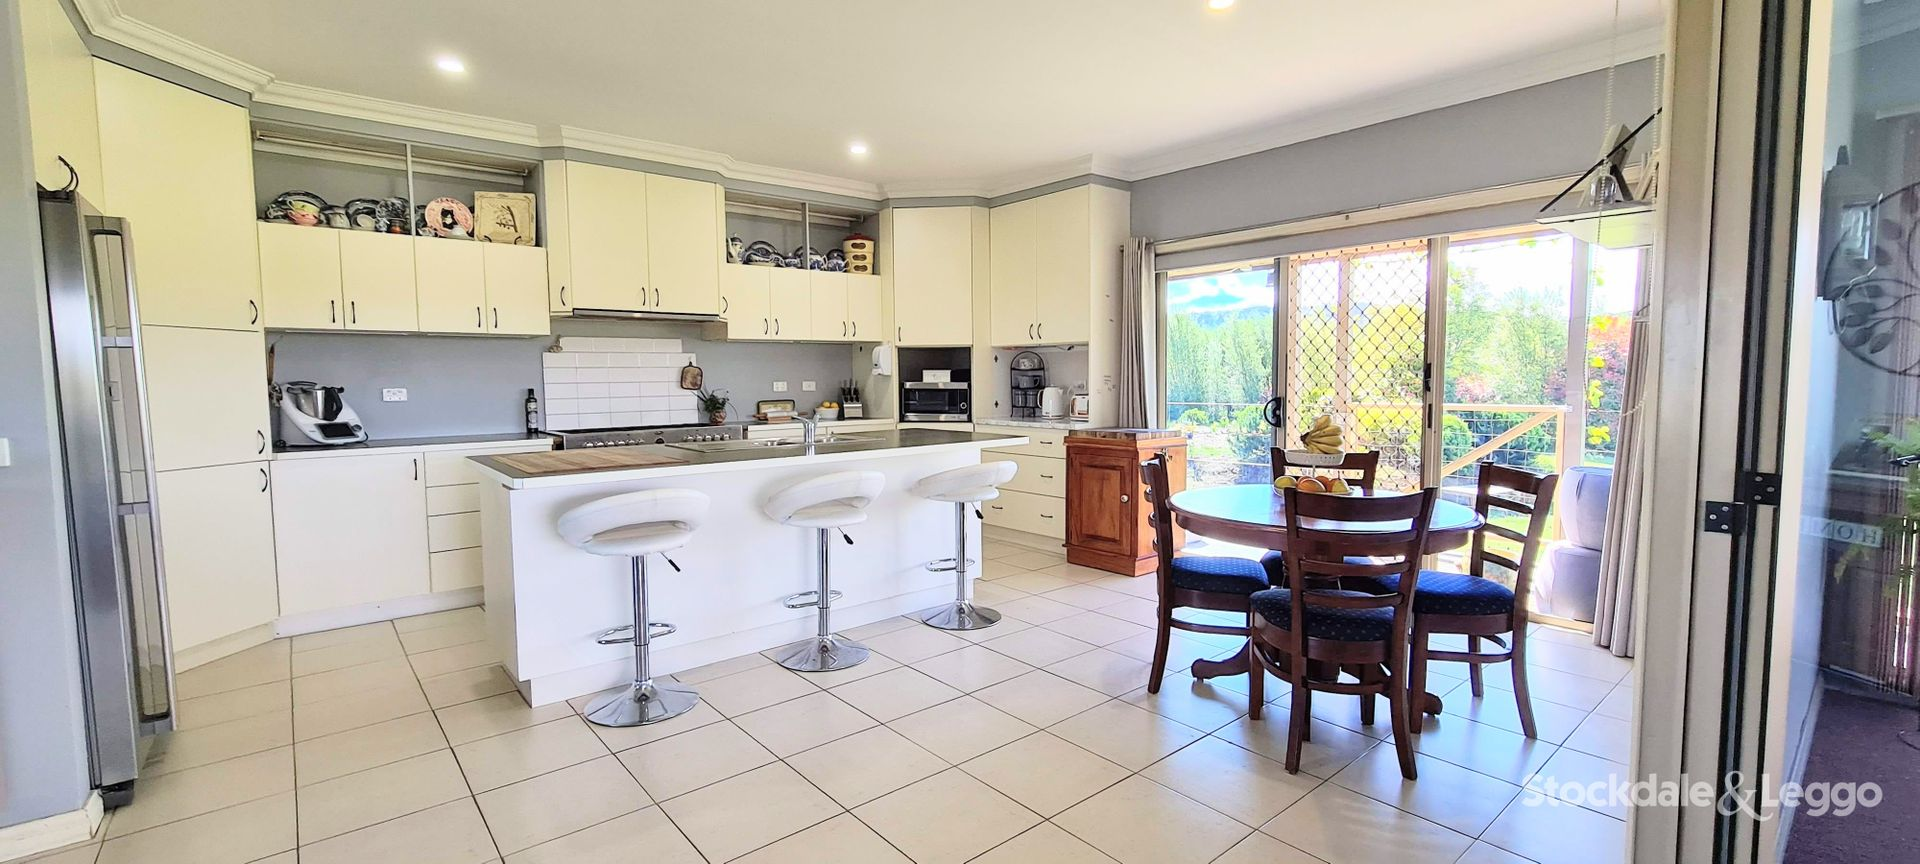 54 Wells Road, Mirboo North VIC 3871, Image 2